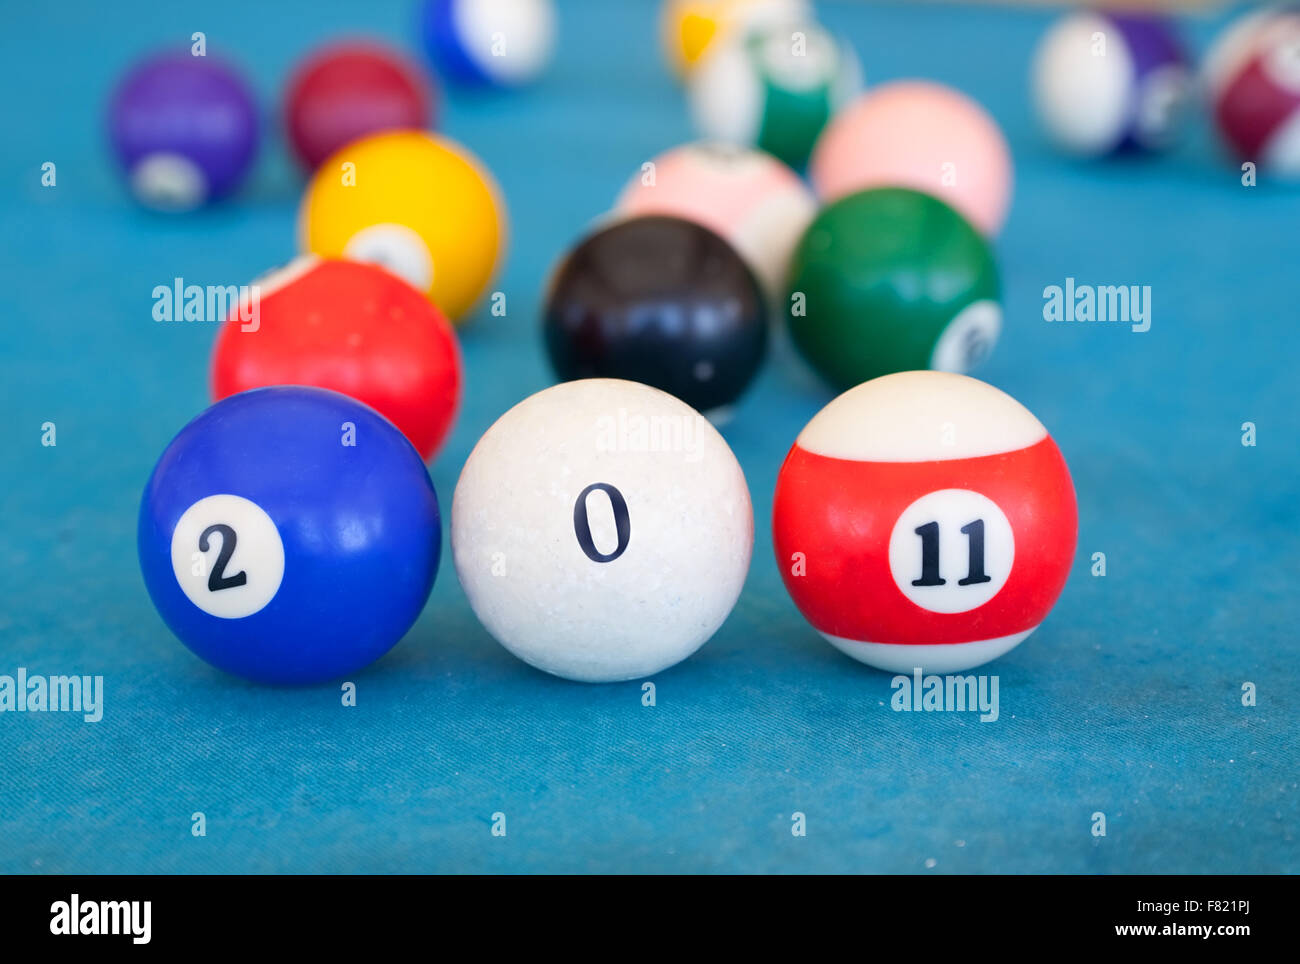 billiard-ball are shown numerals in creative greeting card 2011 with New Year - Stock Image